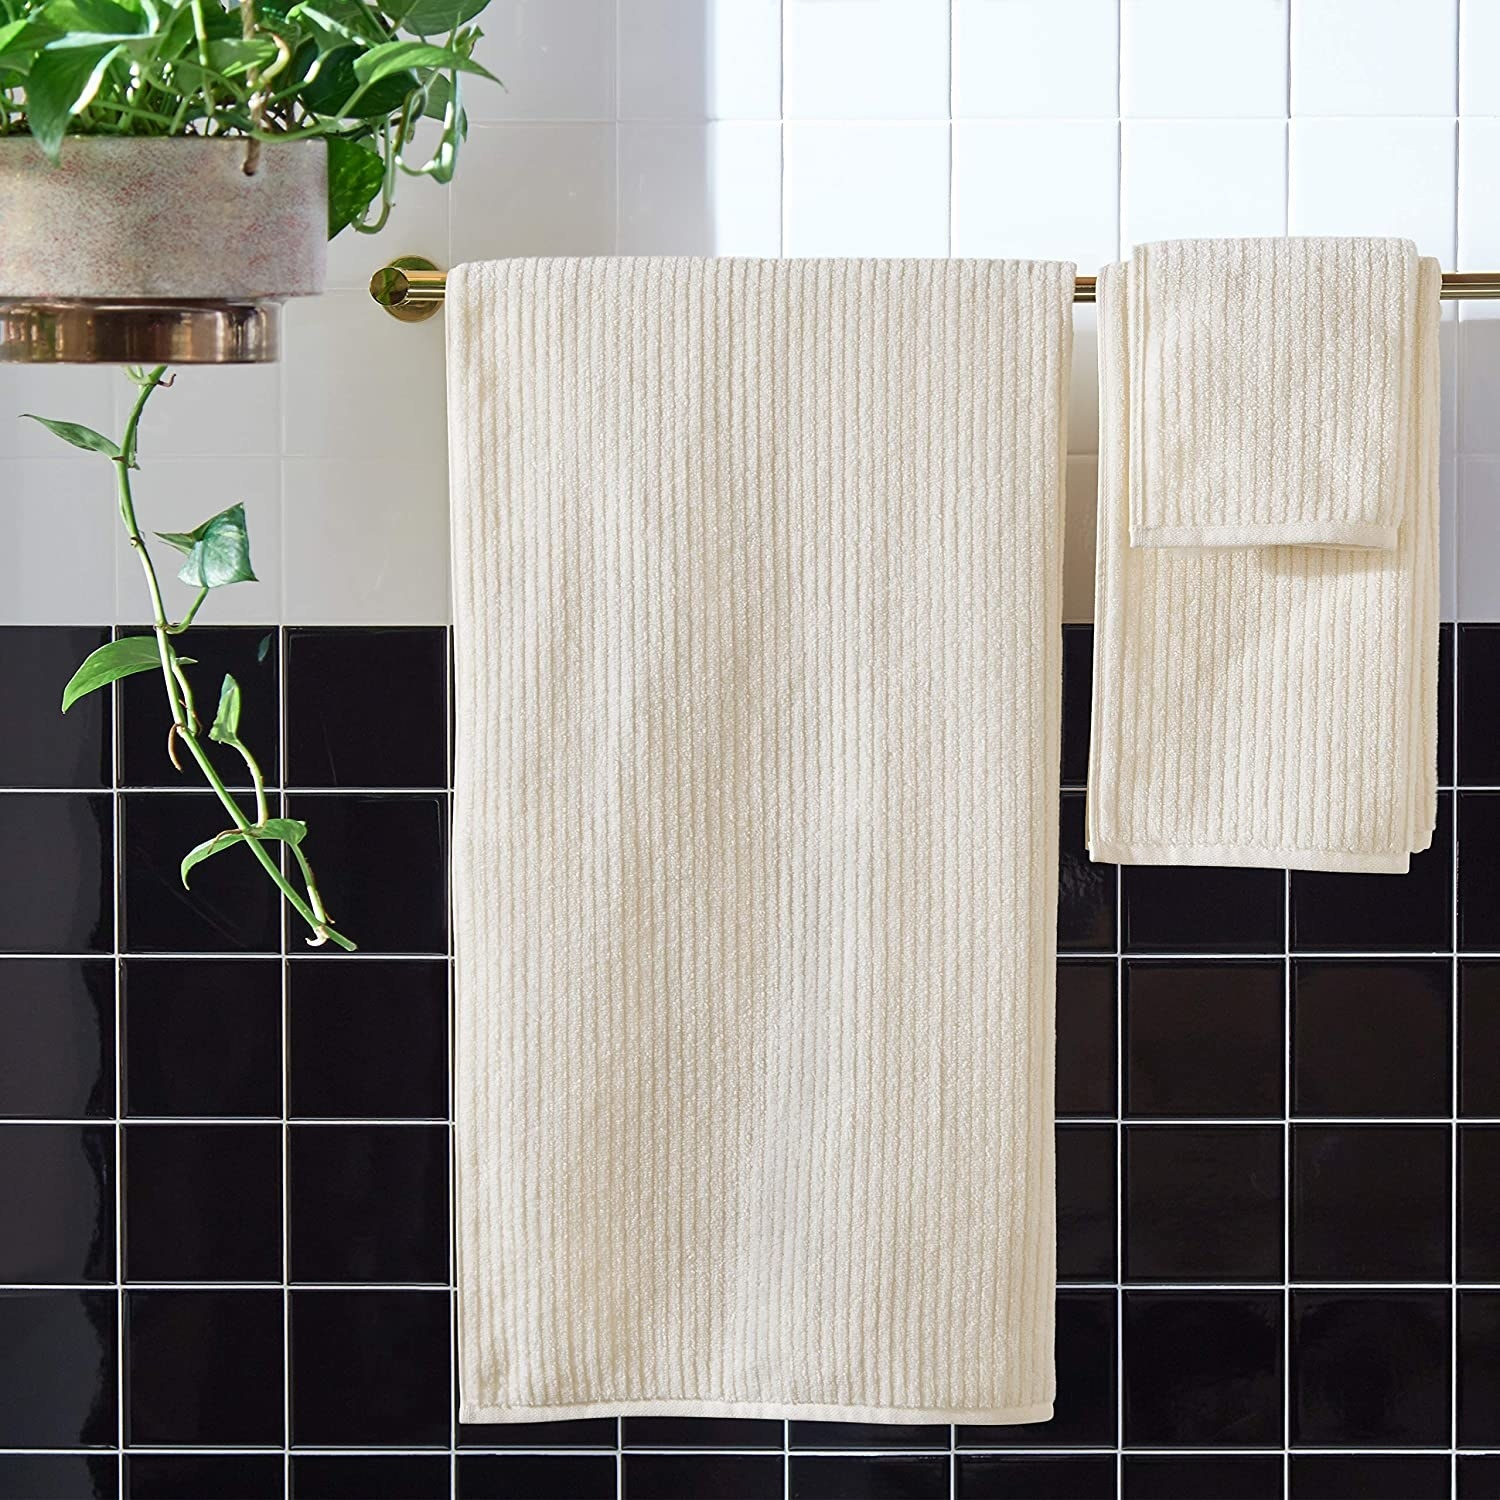 The set of towels neatly hung in a bathroom